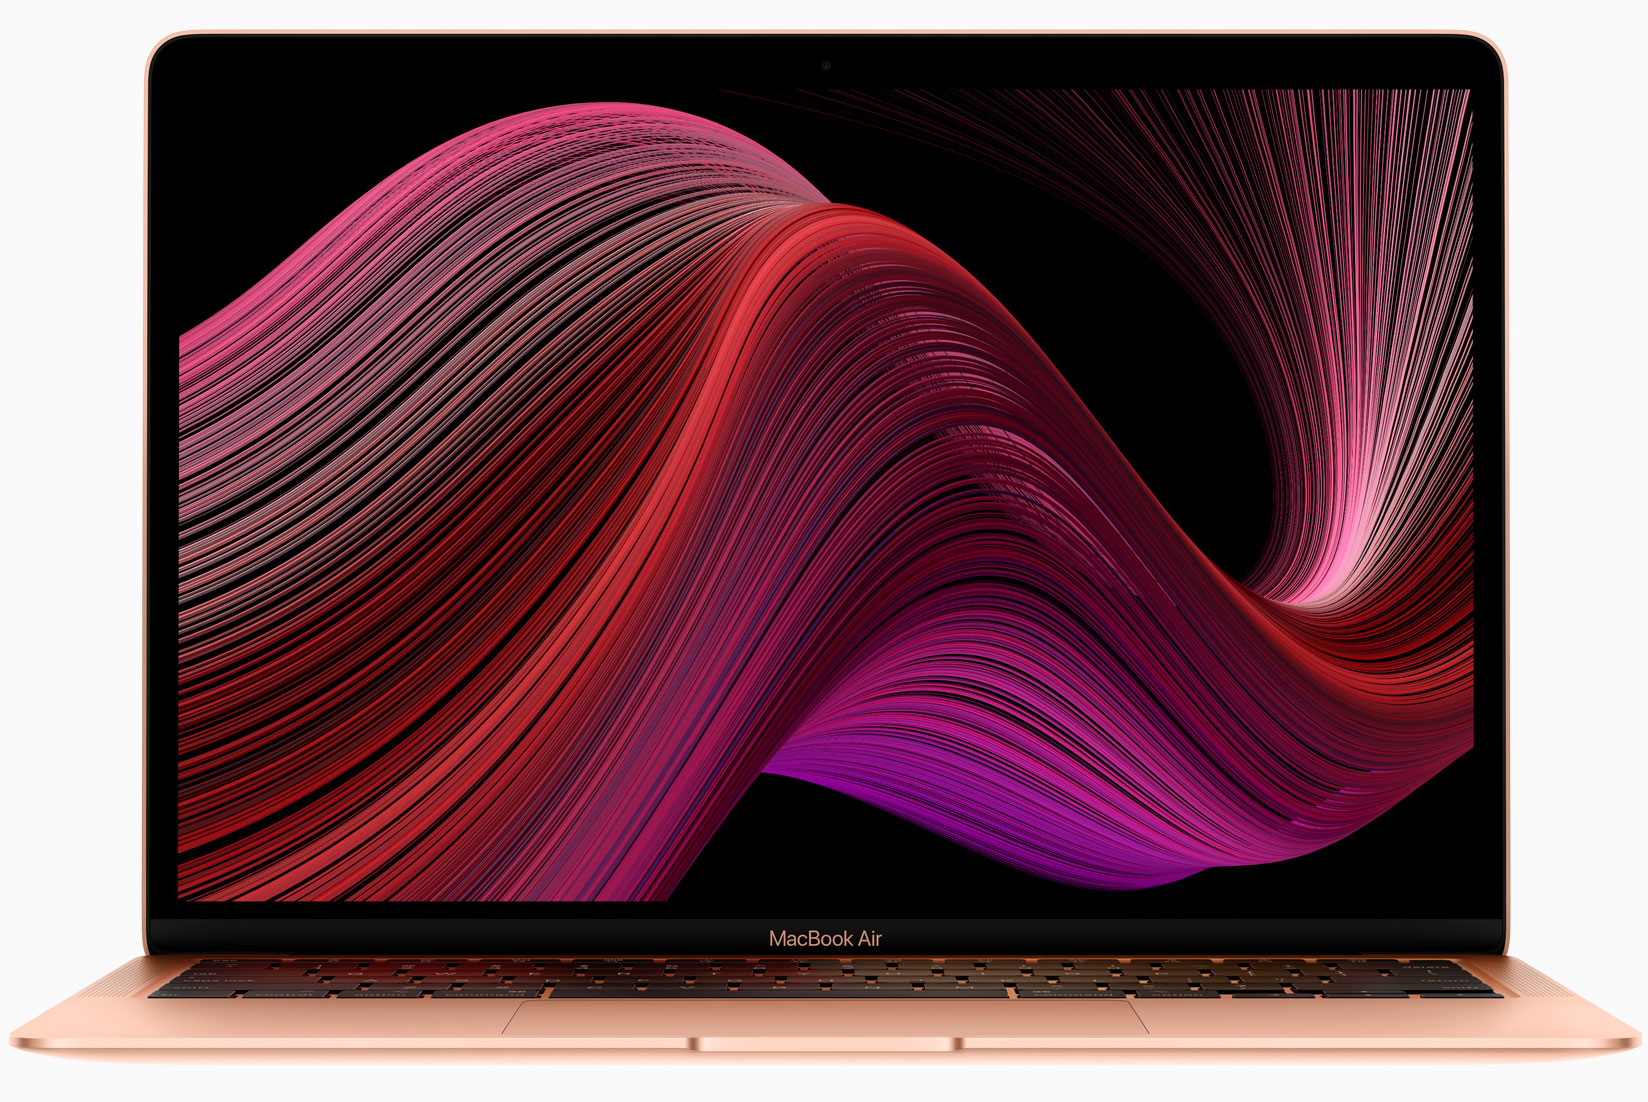 Nuevo MacBook Air del 2020